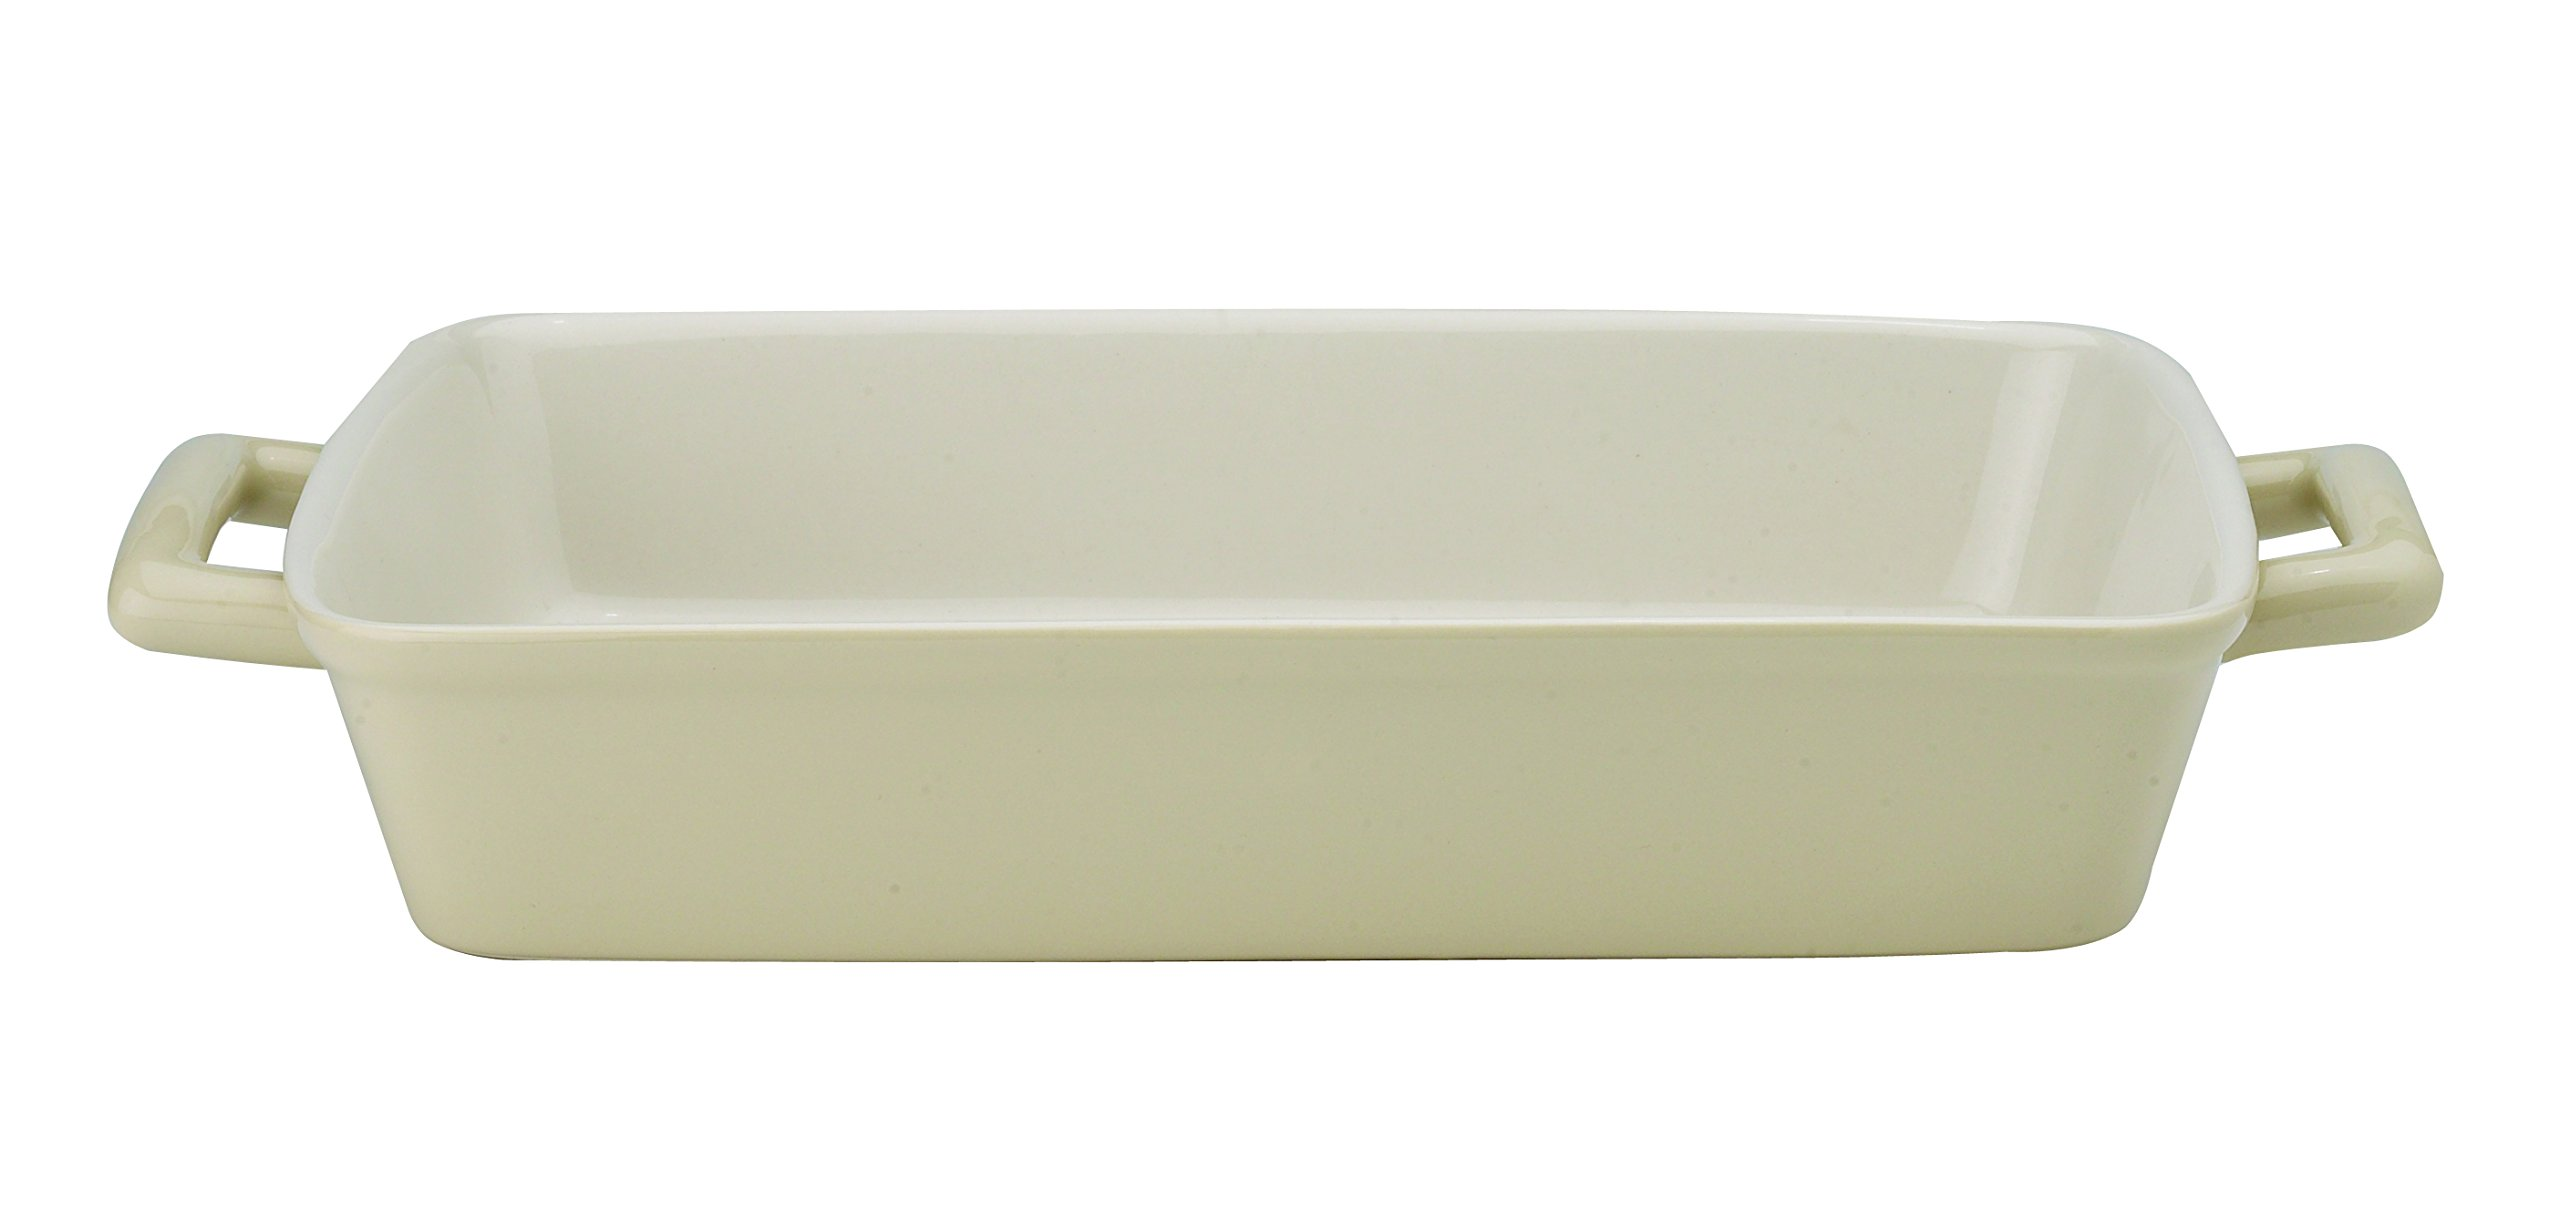 Mrs. Anderson's Baking Oblong Rectangular Baking Dish Roasting Lasagna Pan, Ceramic, Wheat, 13-Inches x 9-Inches x 2.5-Inches